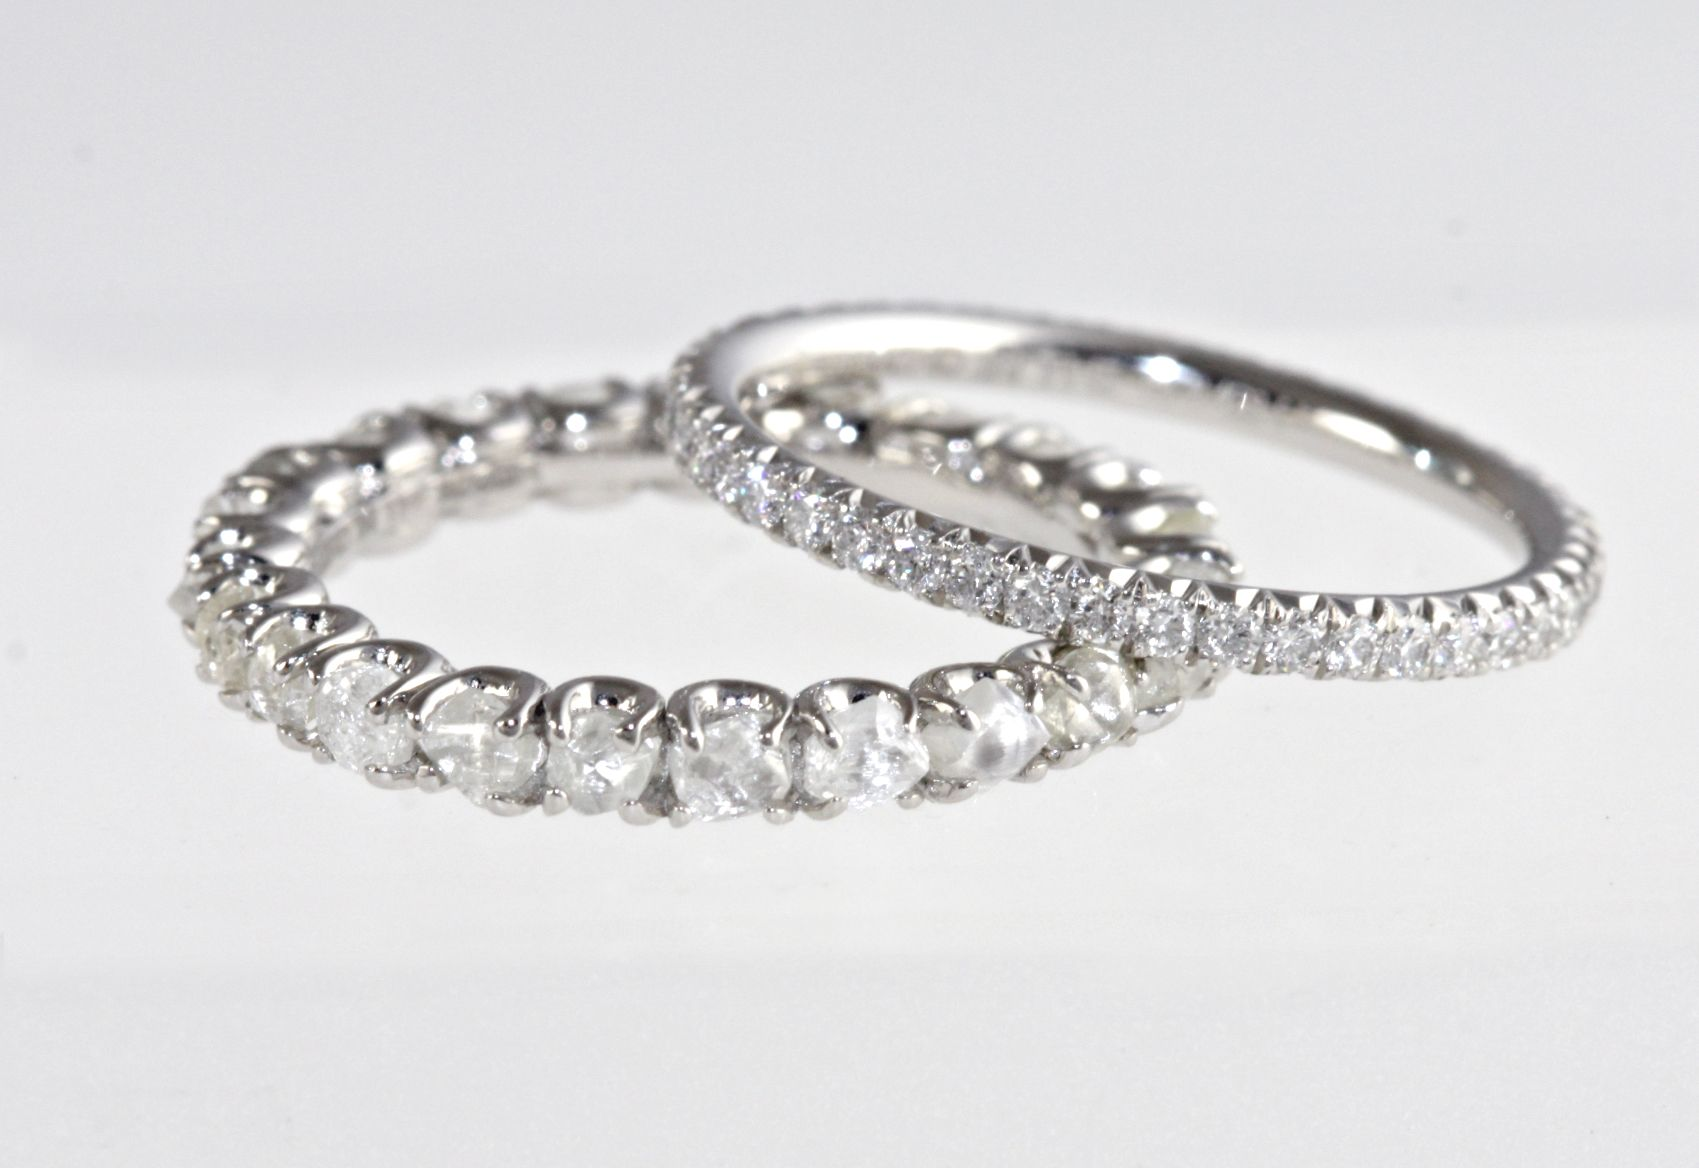 A Rough Diamond Band And Micro Pave Eternity Both Elegant Wedding Bands That Could Even Be Paired Together Weddingrings Ringset